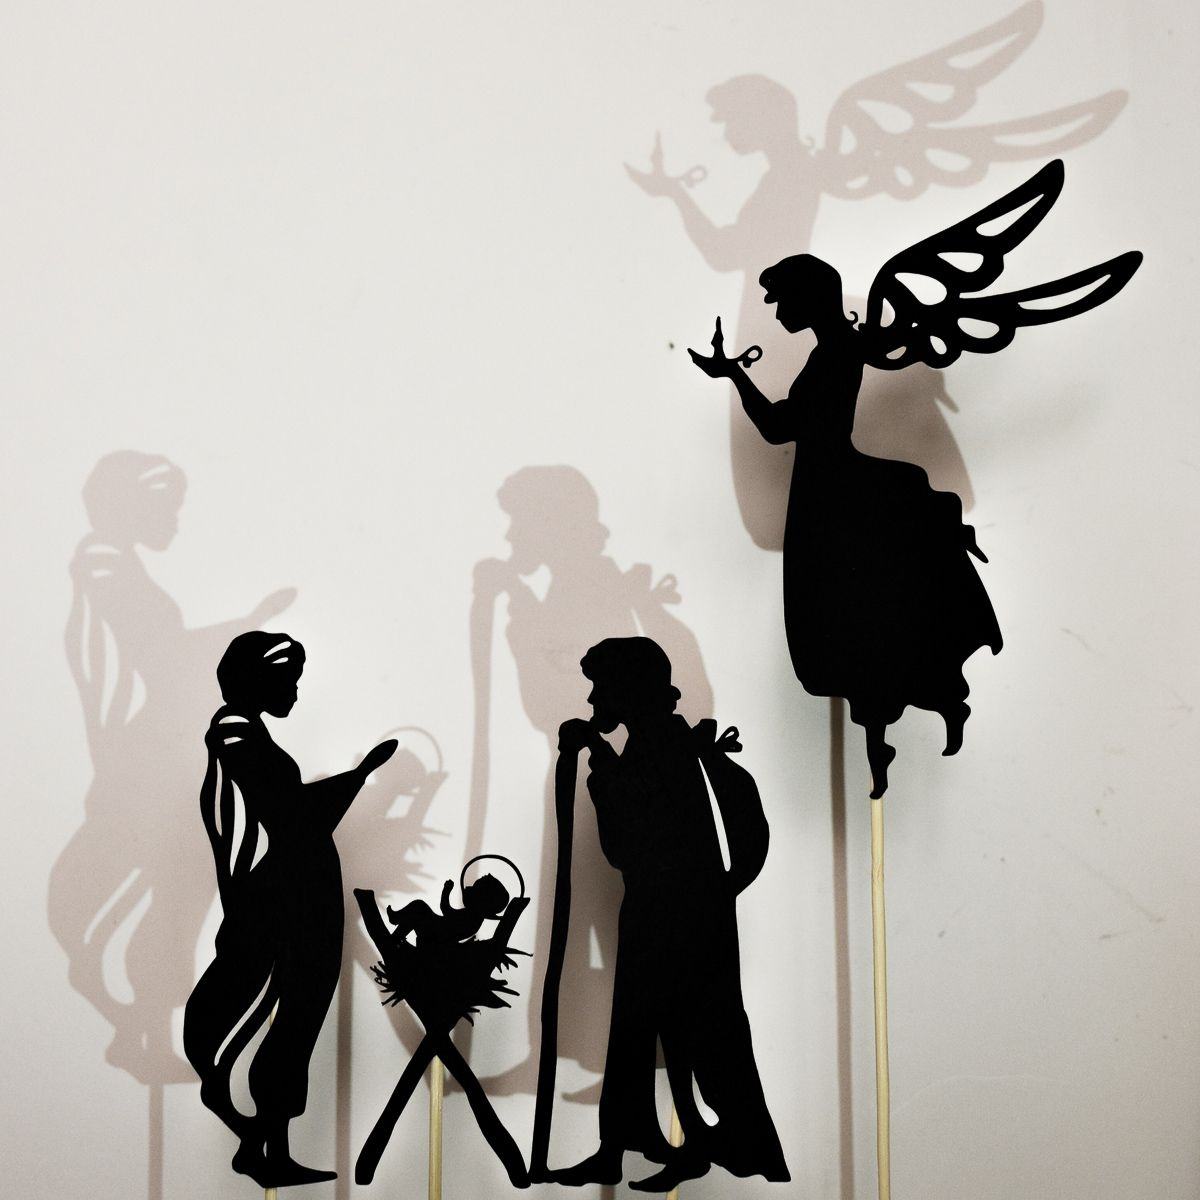 1200x1200 Christmas Window Printable Designs Shadow Puppets, Silhouette